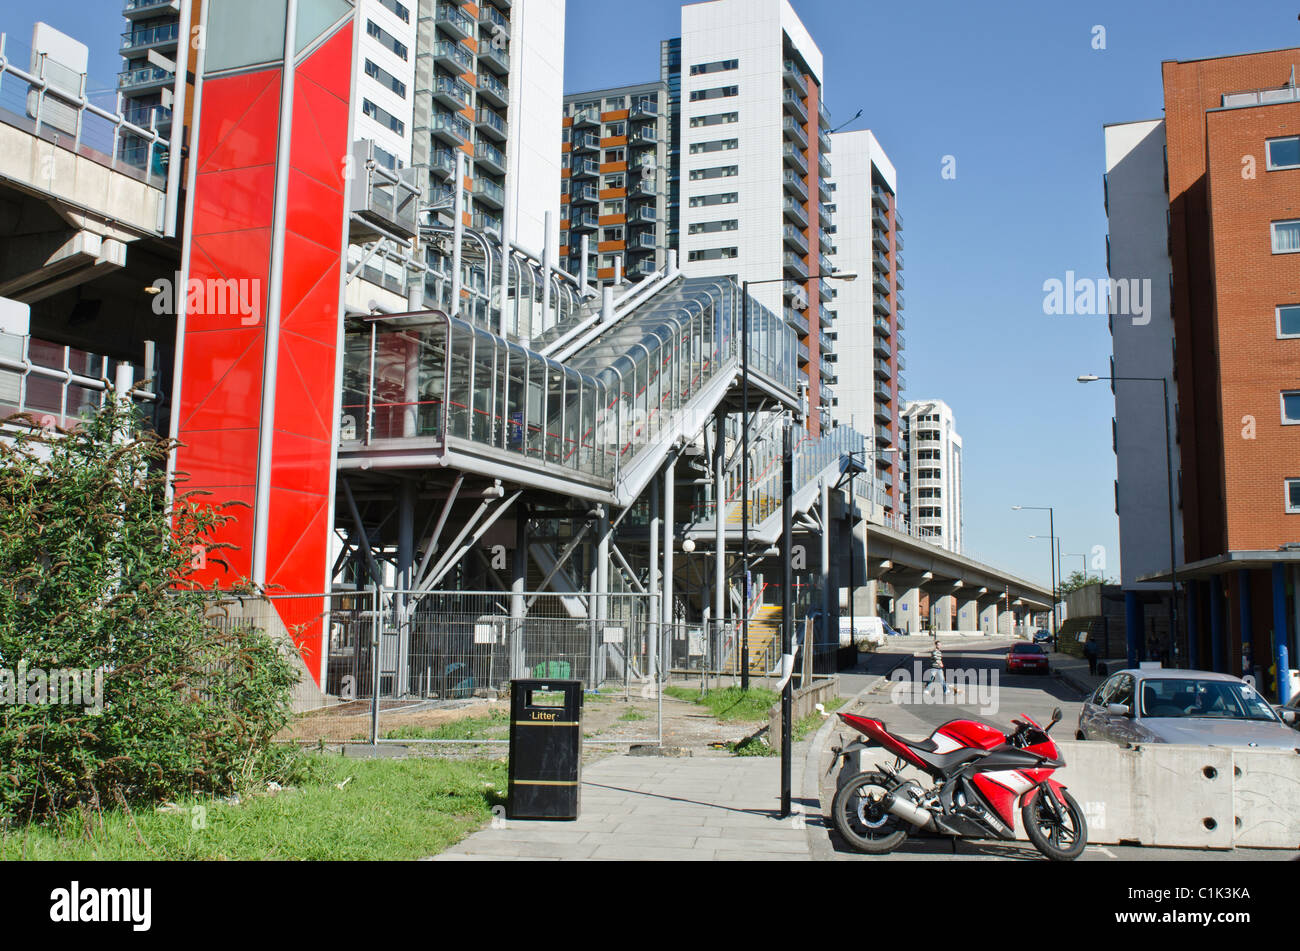 East India Dock DLR station station Poplar E14, London. Apartment blocks behind Uk Red motor bike in foreground - Stock Image